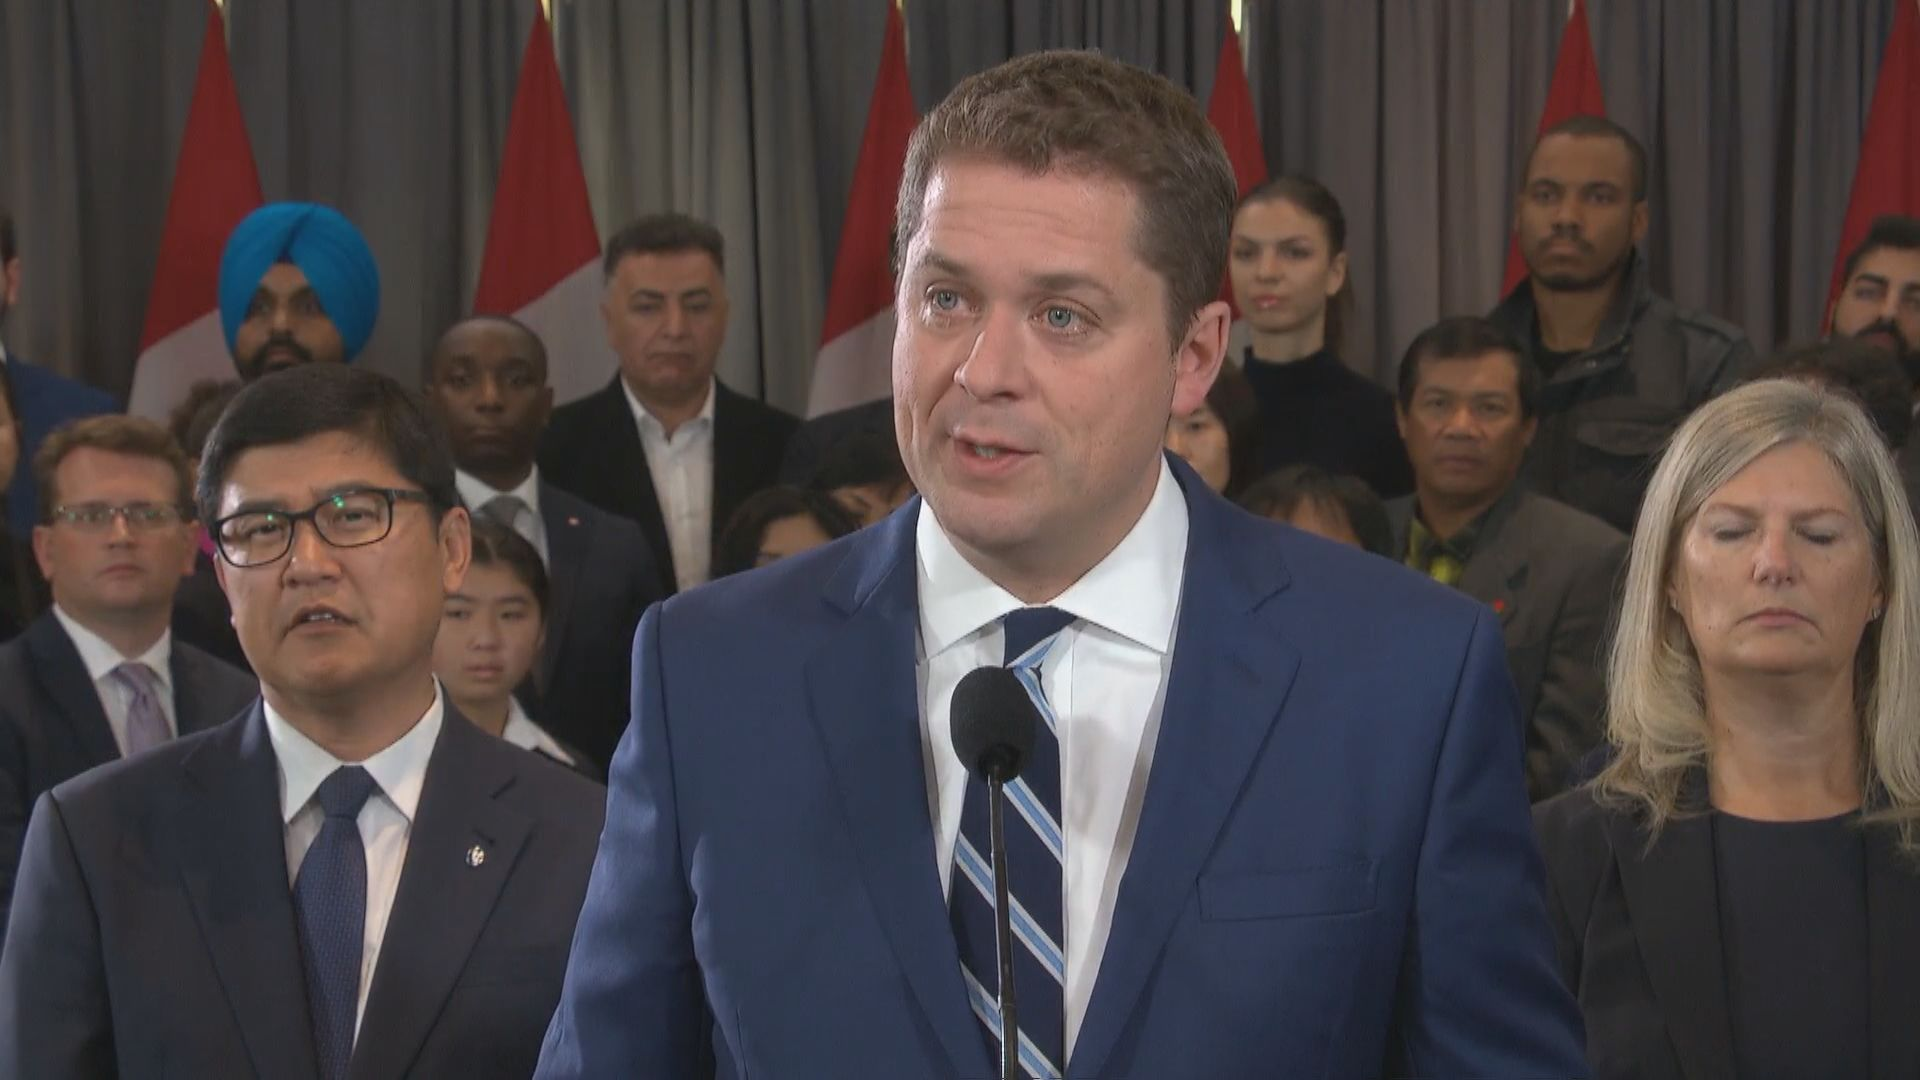 Federal Election 2019: 'It's up to him to explain' Scheer says when questioned about claim Liberals and NDP are eyeing coalition